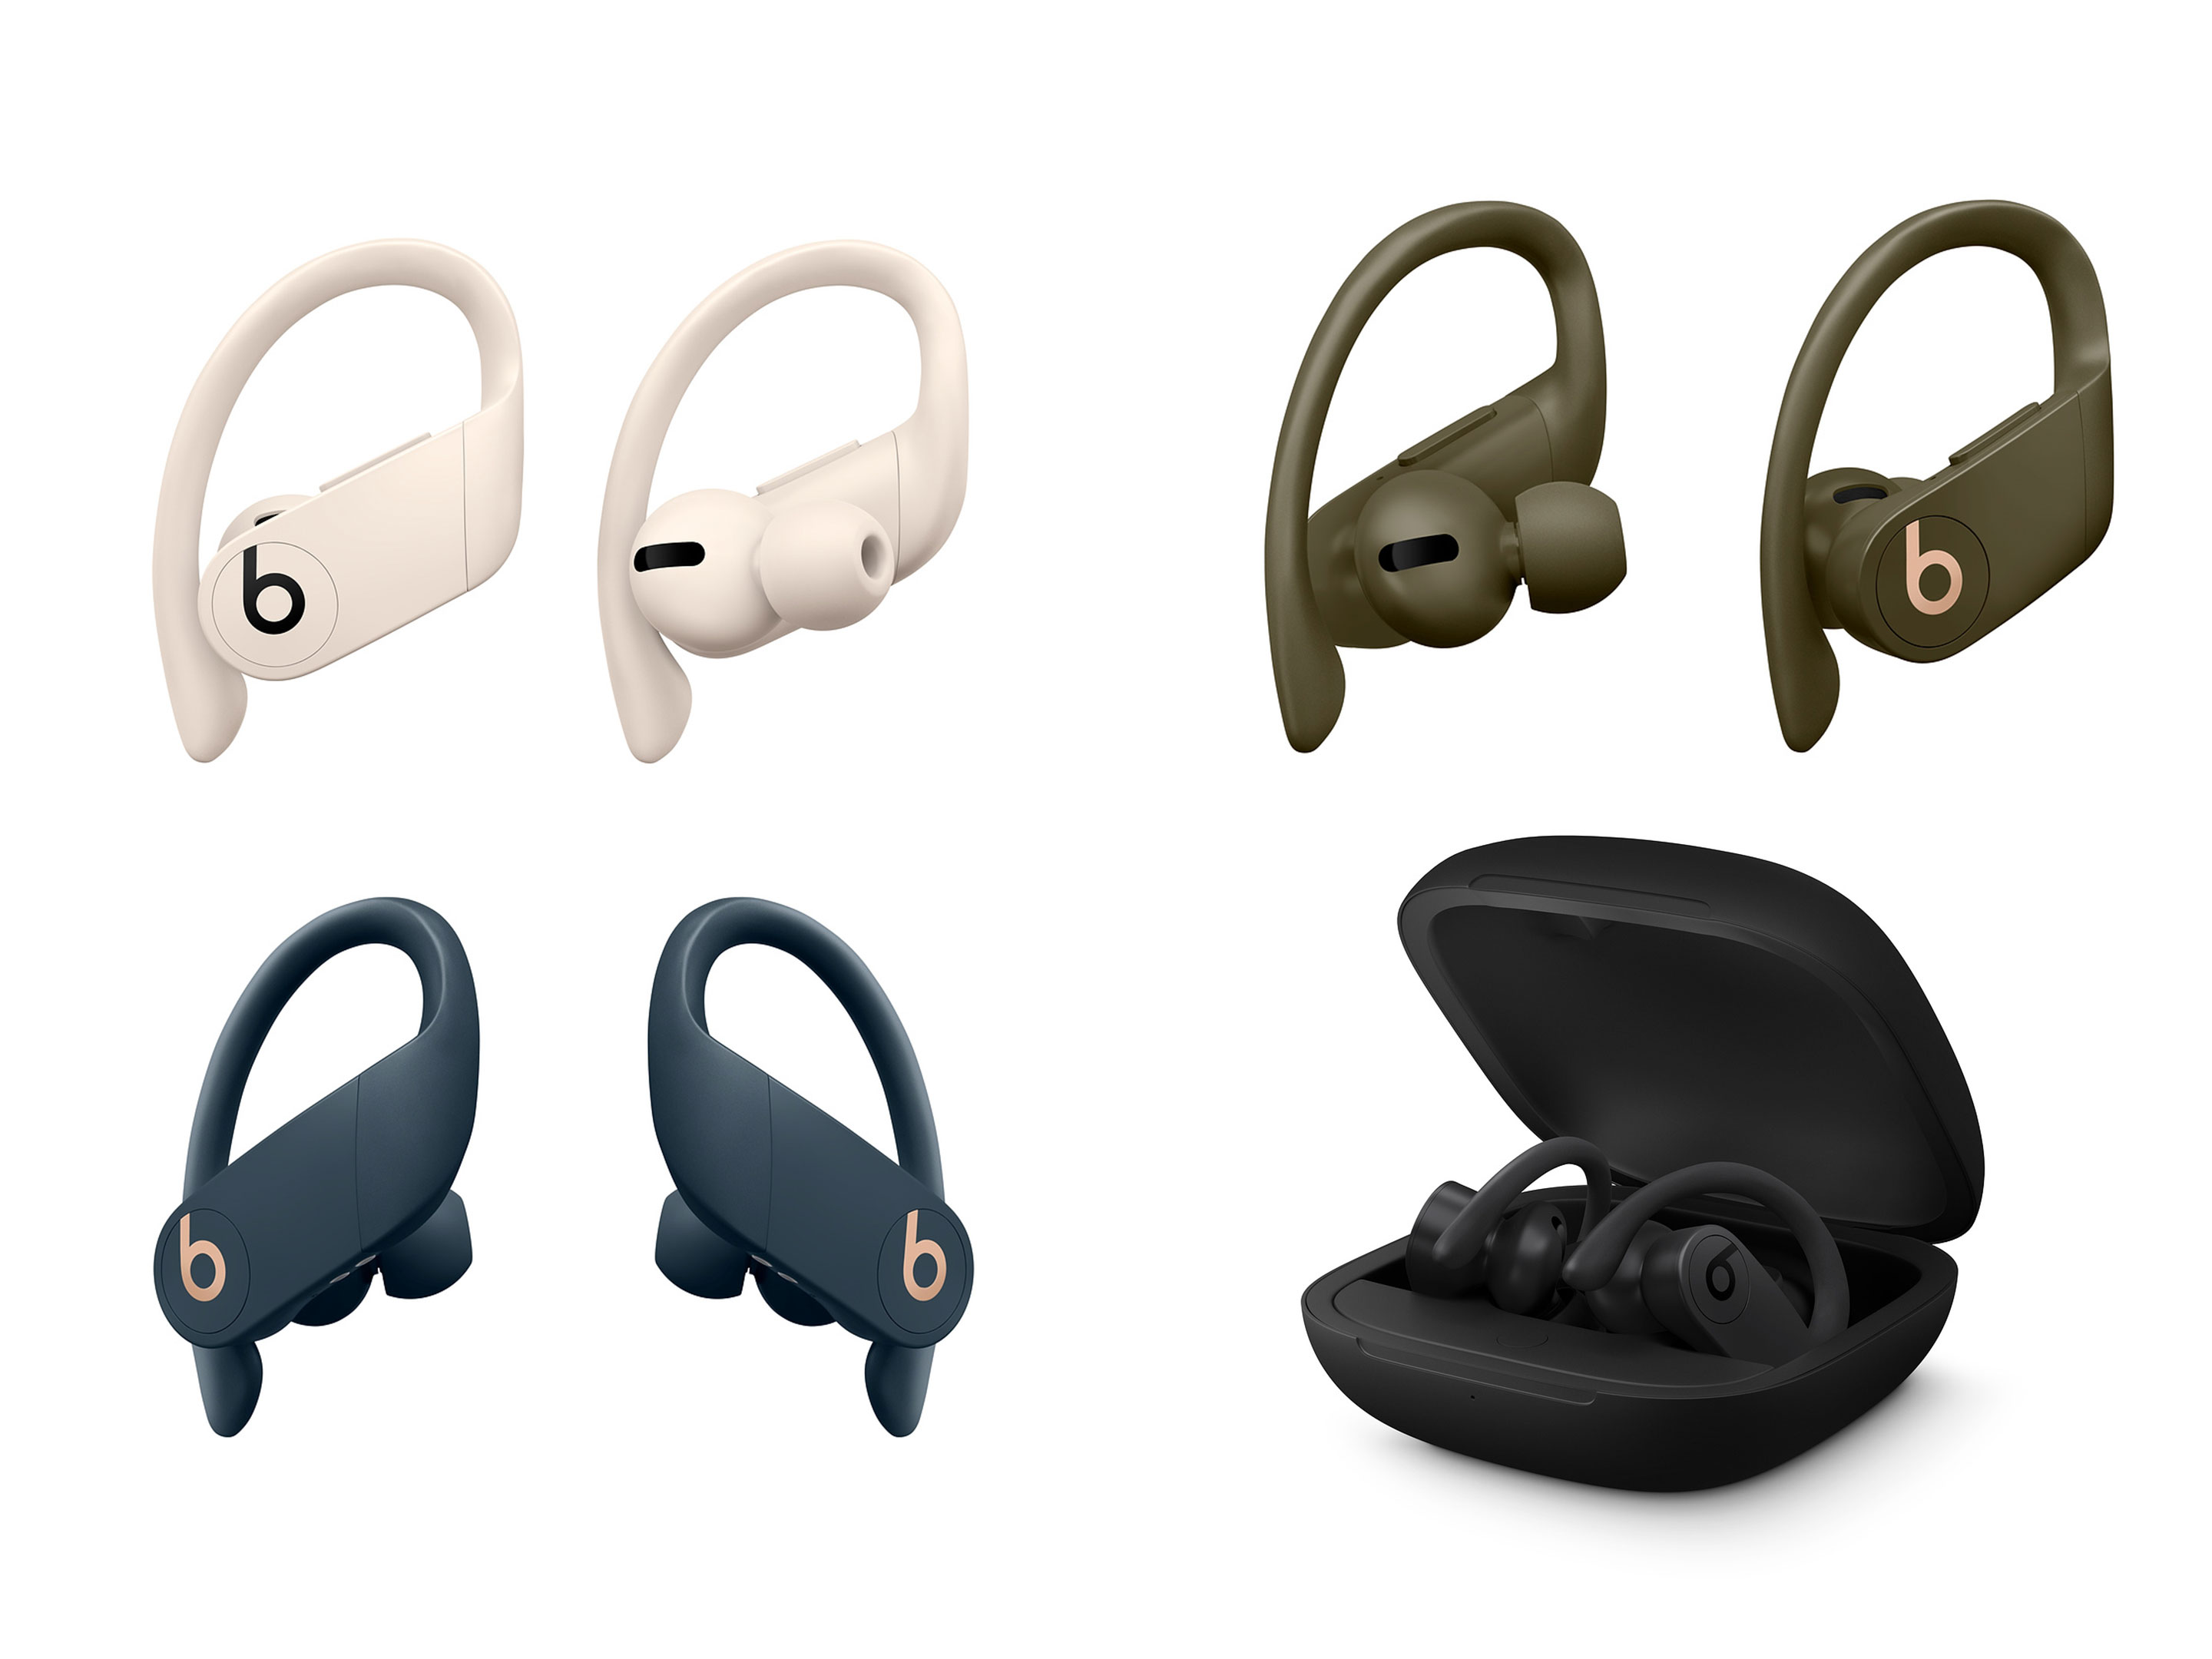 1ecf2cc4413 Feature-wise the Powerbeats are very similar to Apple's AirPods, but they  feature better battery life, coming in at nine hours per charge.